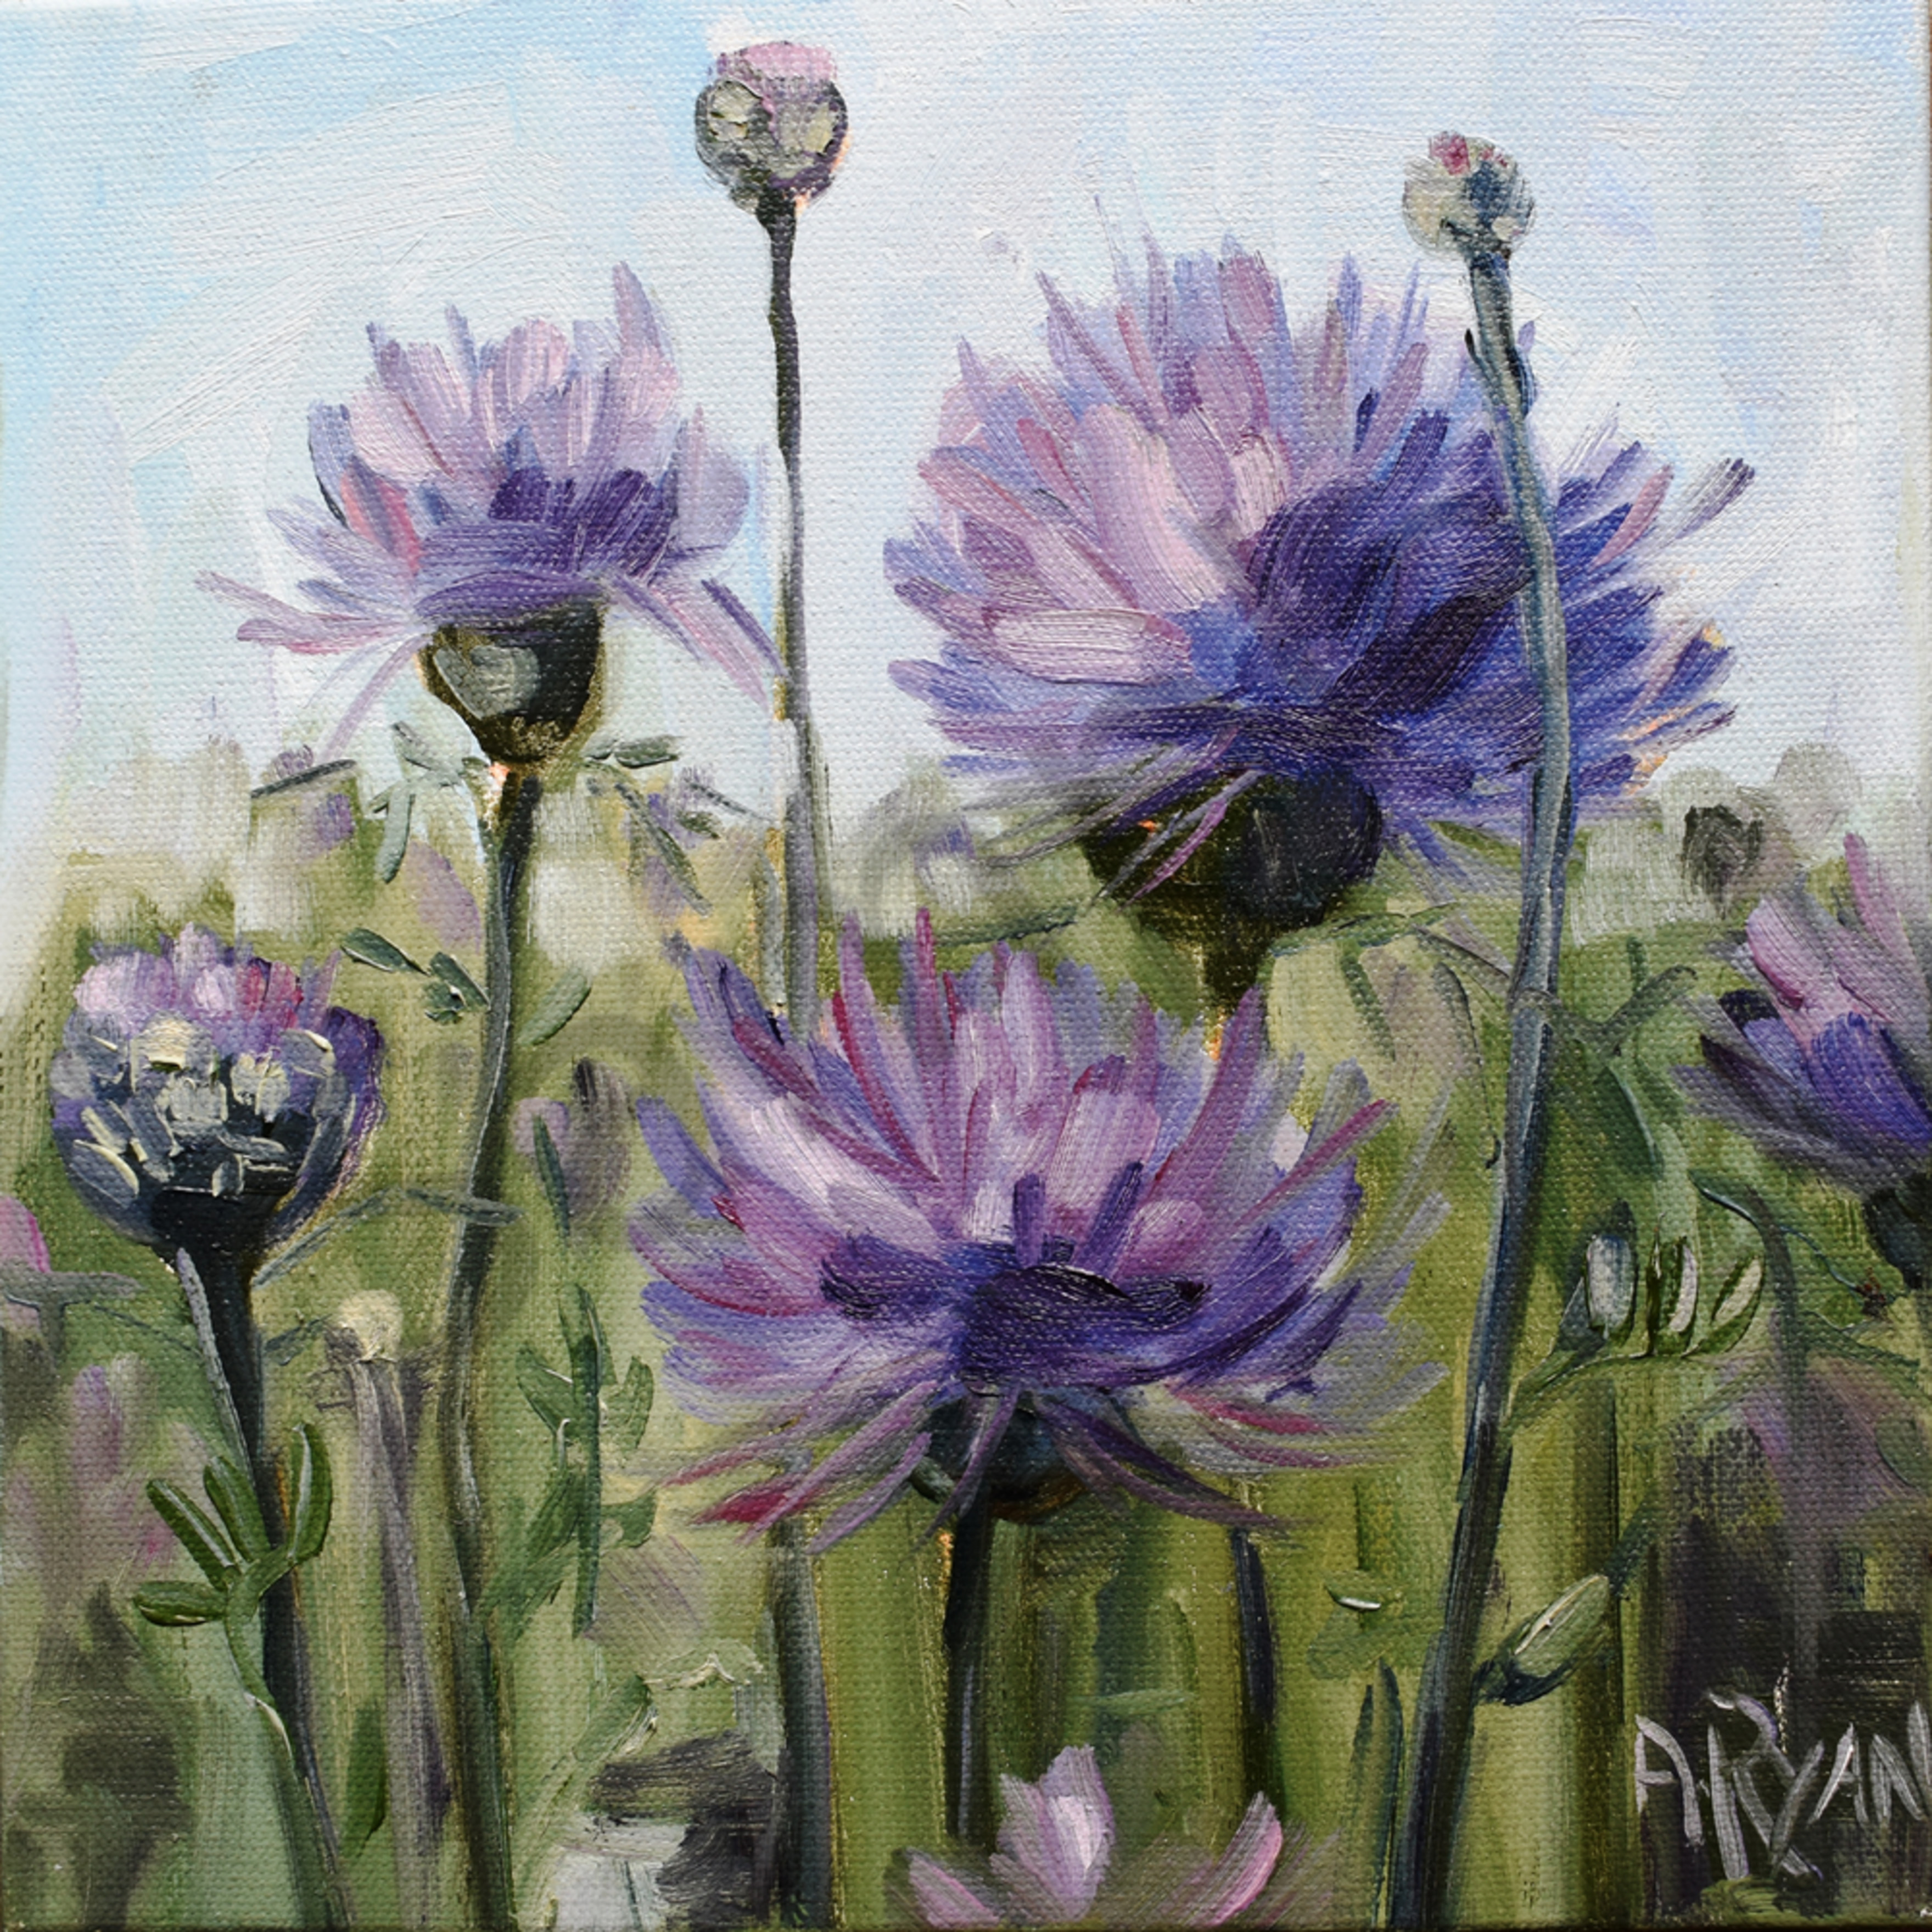 Thistle field by april ryan qf3ndg